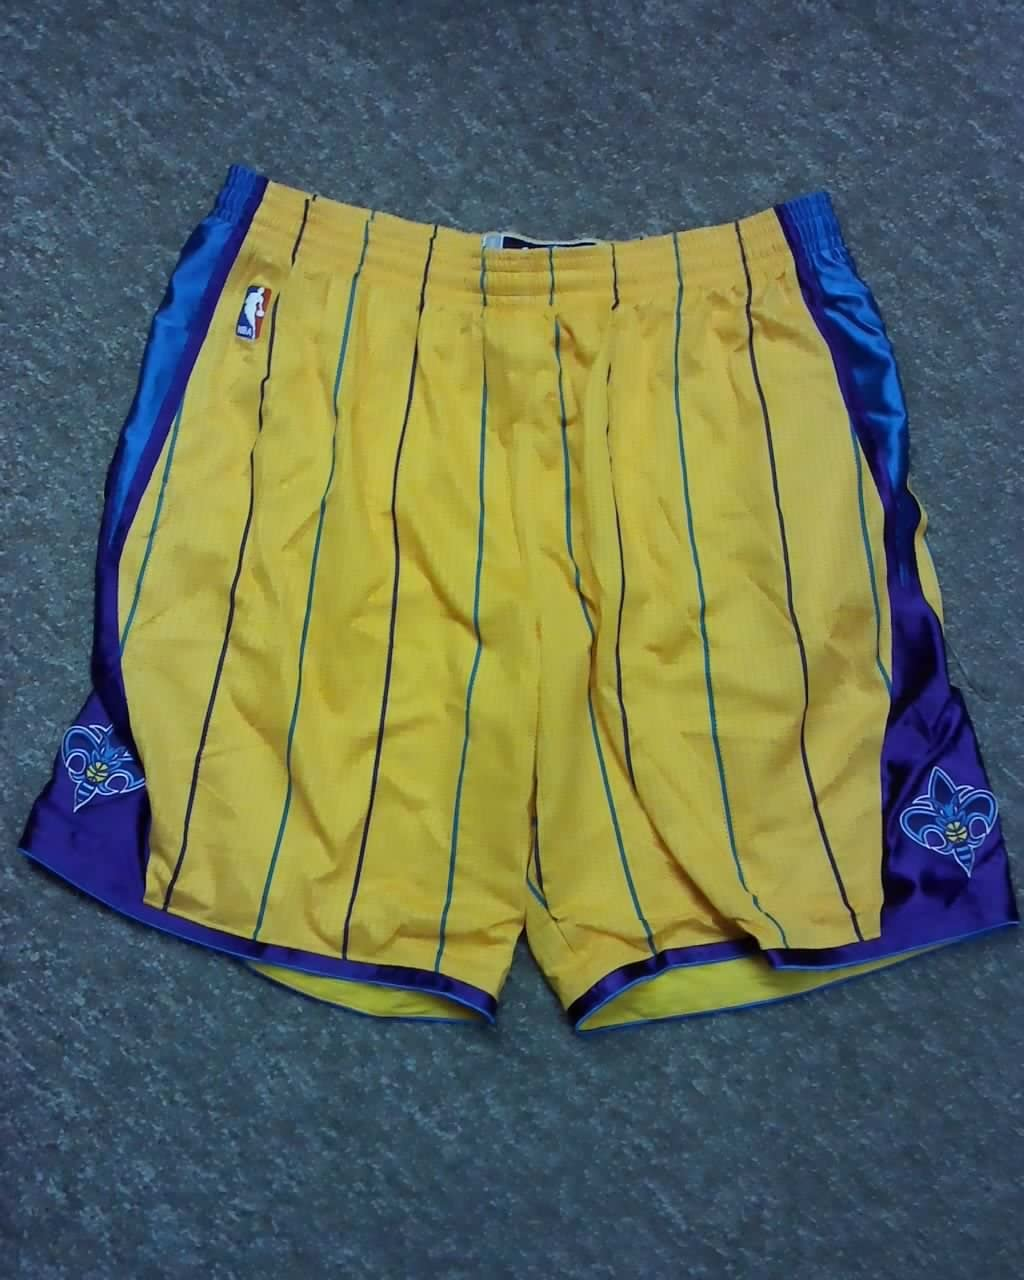 Aaron Gray New Orleans Hornets Game Worn Shorts